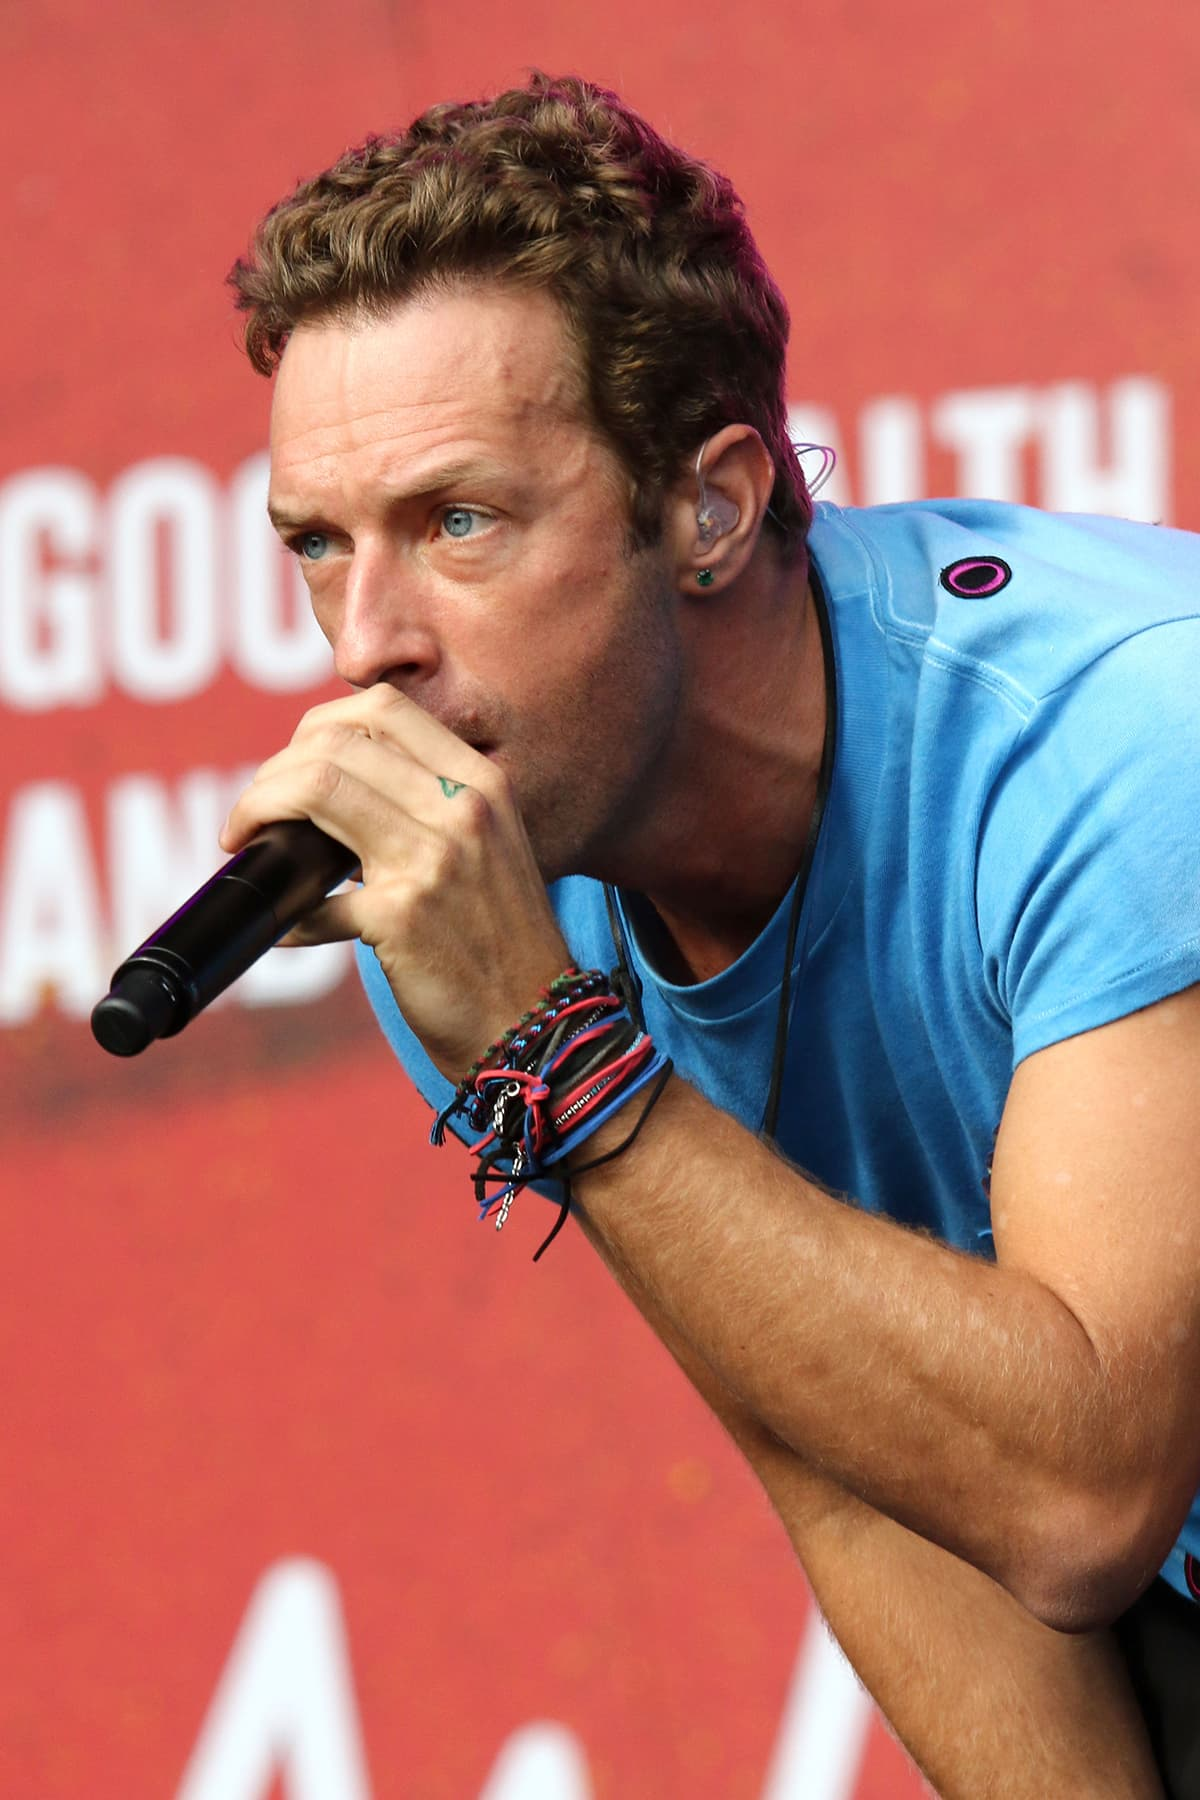 Chris Martin of Coldplay sings at the Global Citizen Festival. — AP